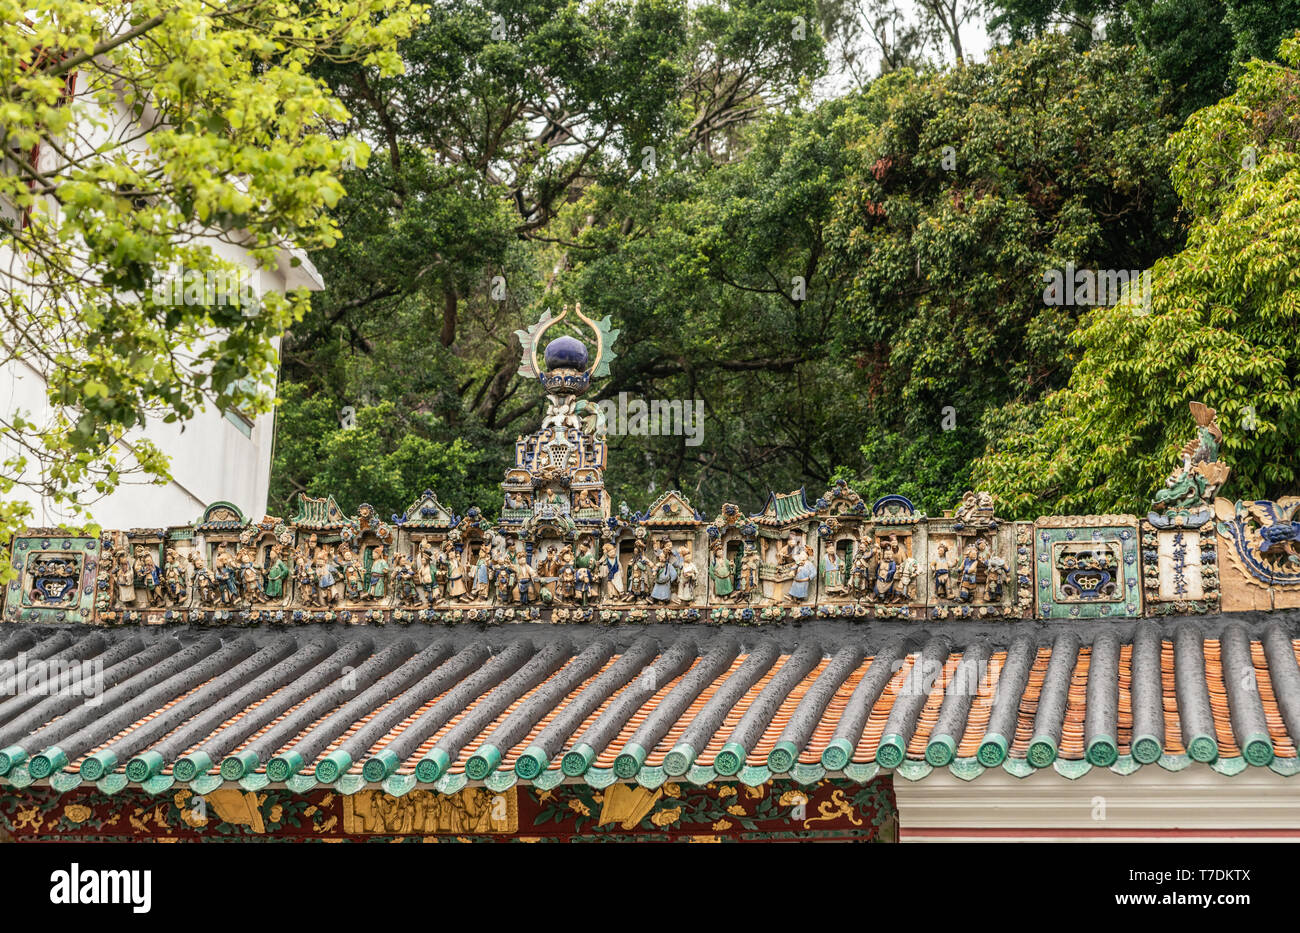 Hong Kong, China - March 7, 2019: Tai O Fishing village. Extensive statue decorations on roof of Kwan Tai Taoist temple. Surrounded by green foliage. - Stock Image